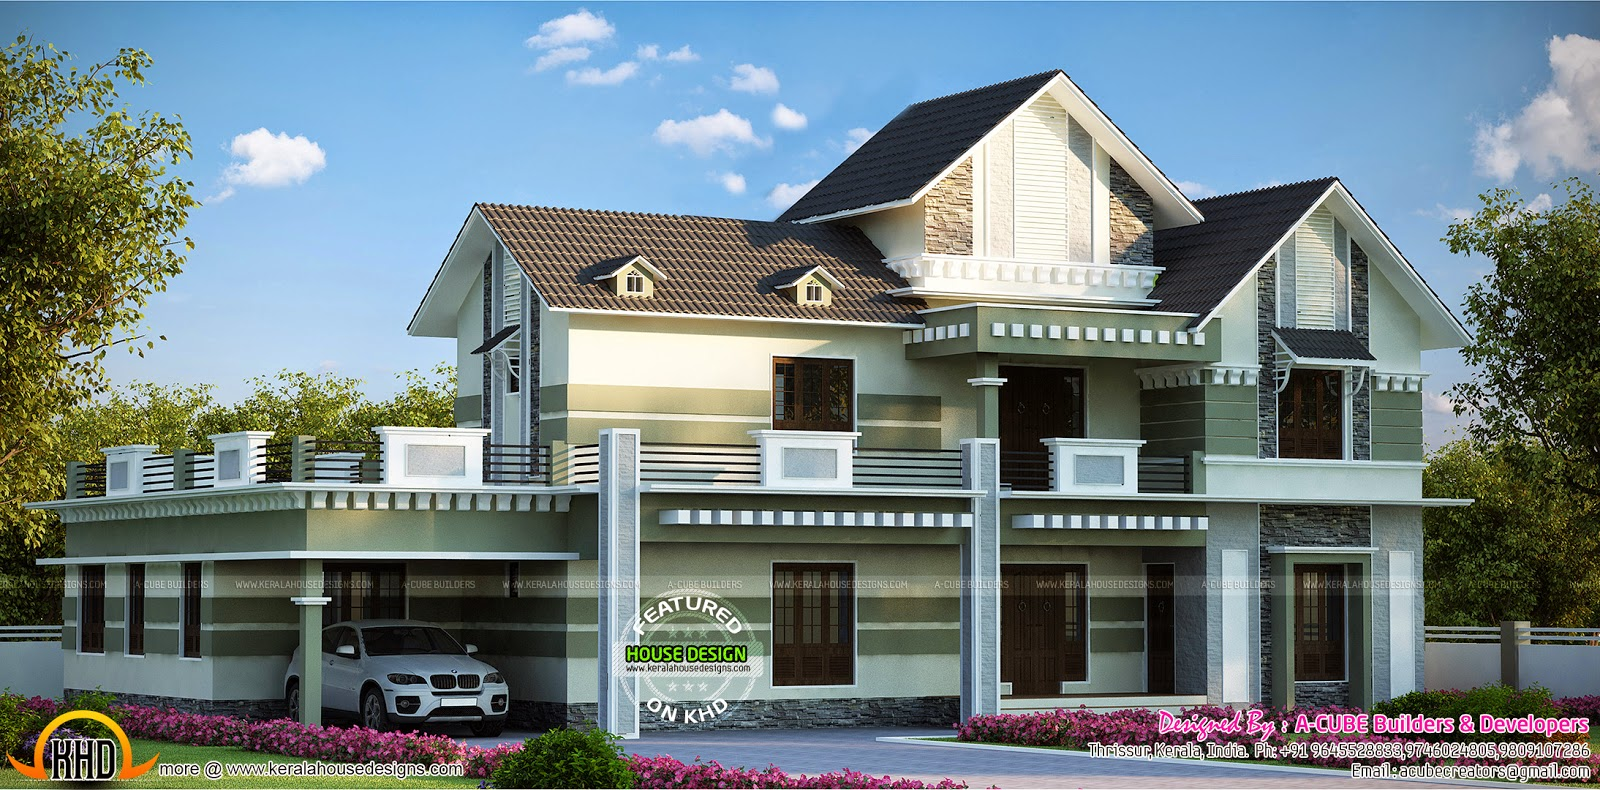 3122 sq ft 4 bhk house kerala home design and floor plans for 4 bhk house plan ground floor